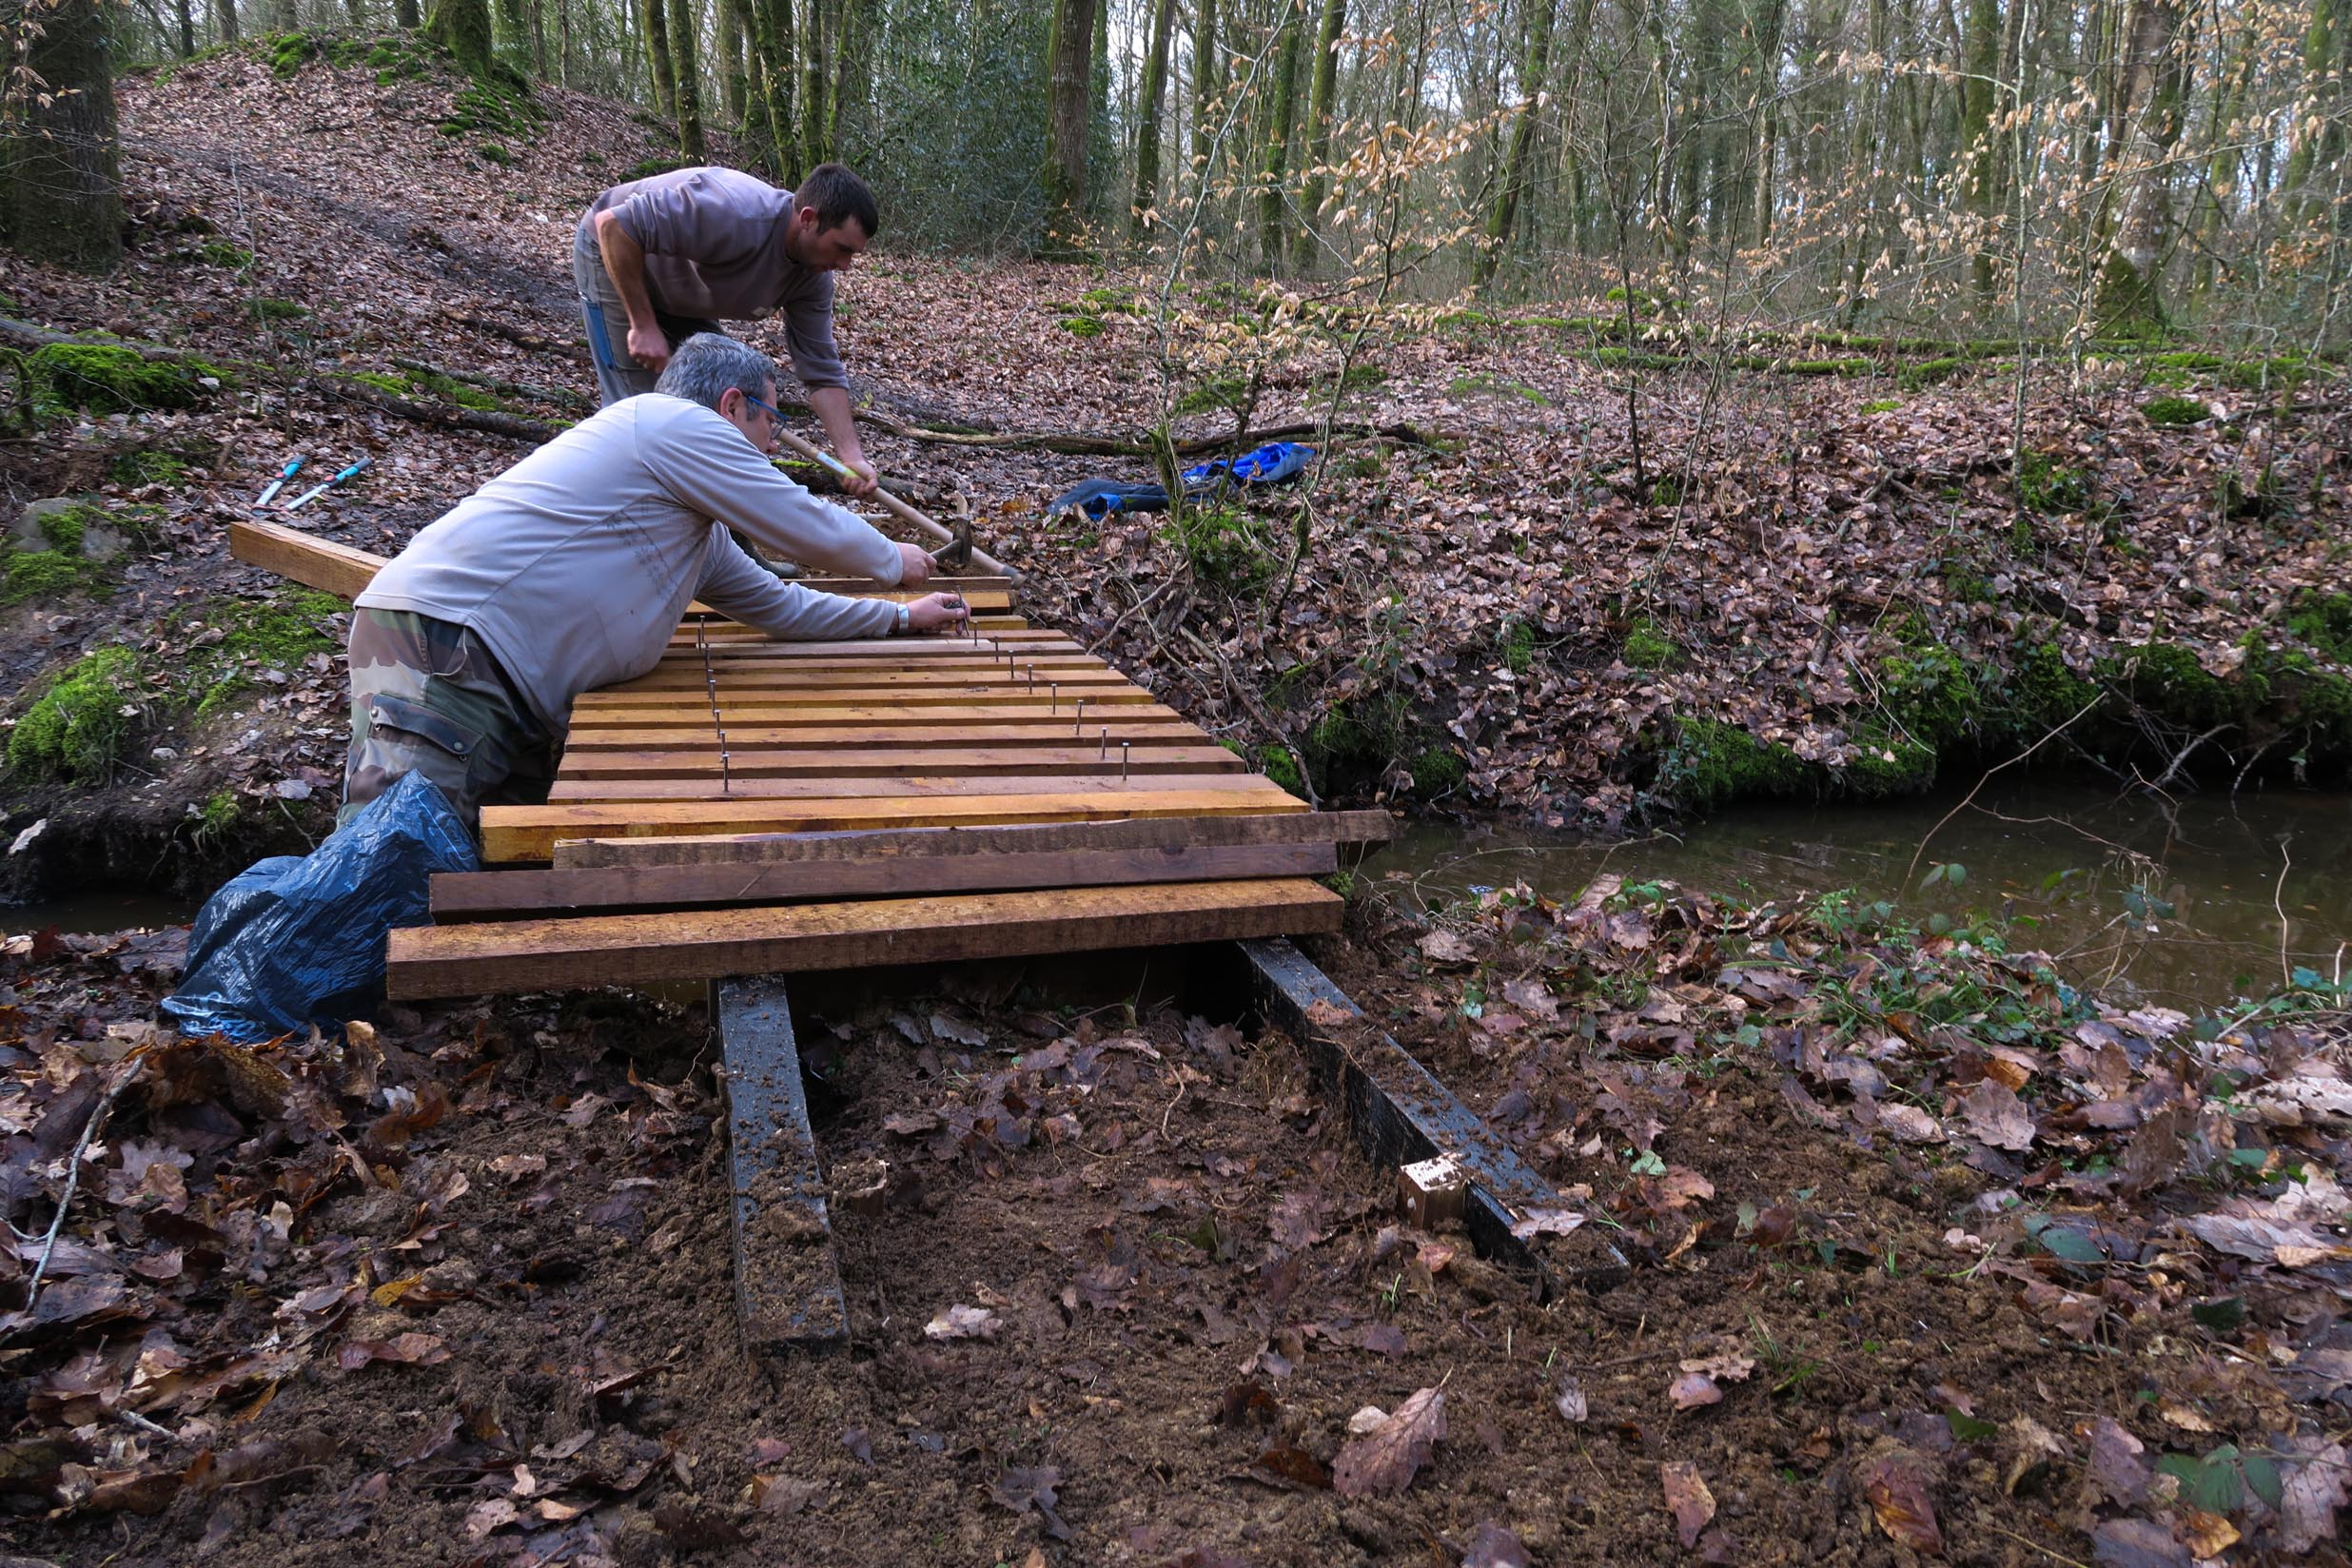 2018-03-10 Fabrication passerelle forêt Rennes